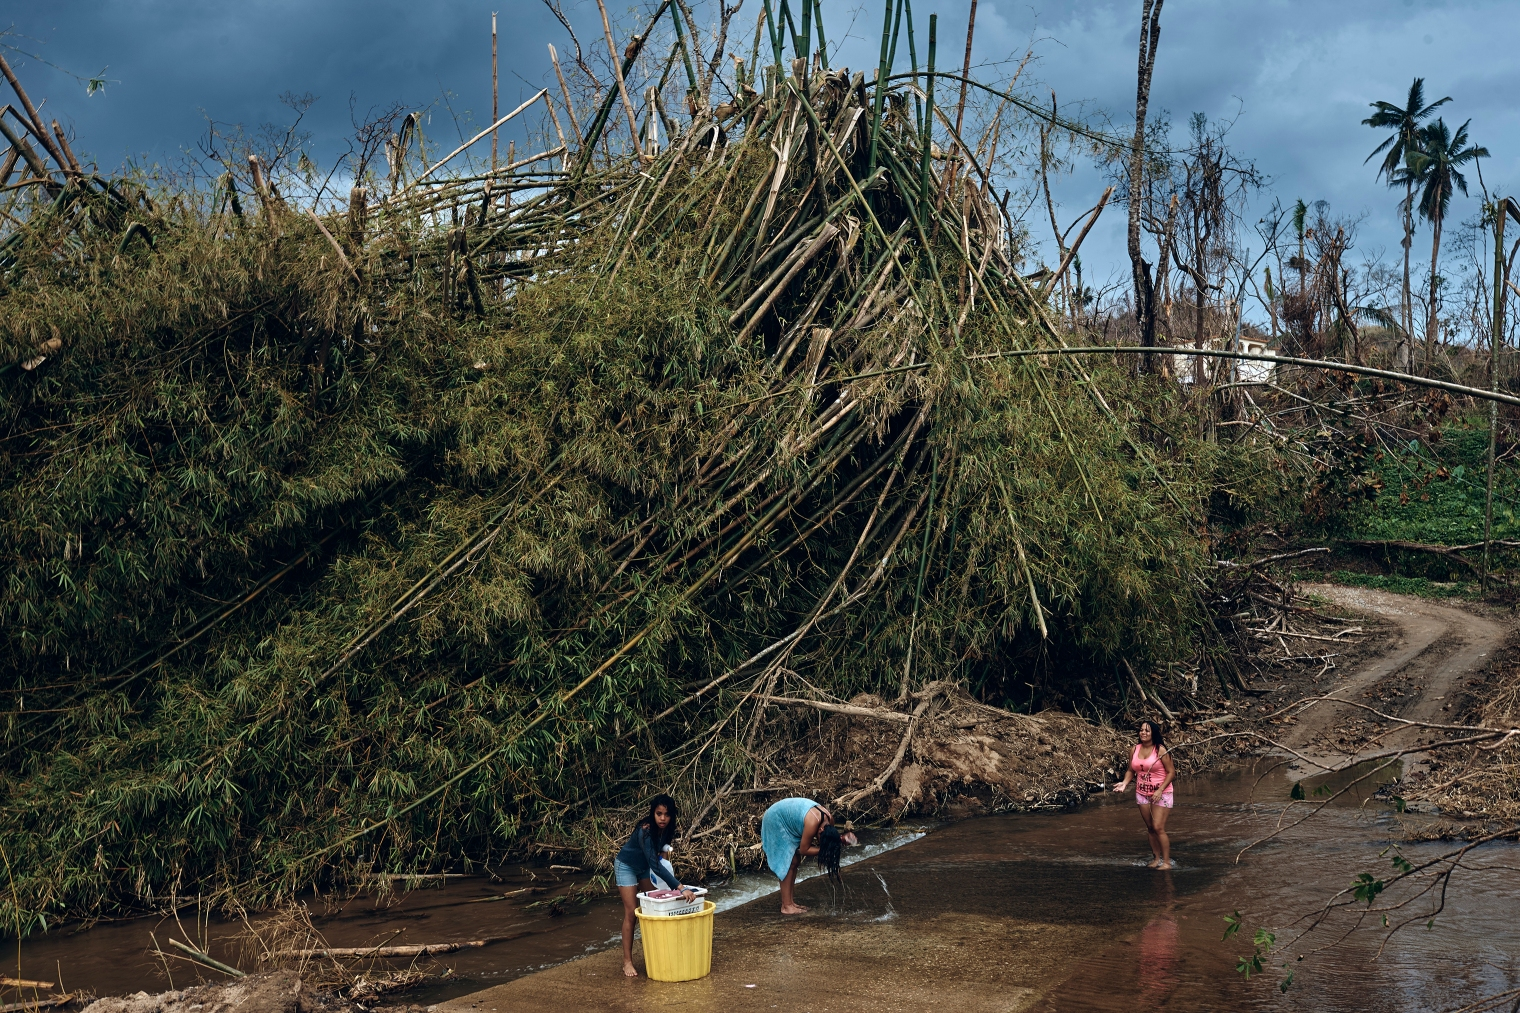 A family bathes in a river in Morovis, Puerto Rico, on Oct. 1, 2017.